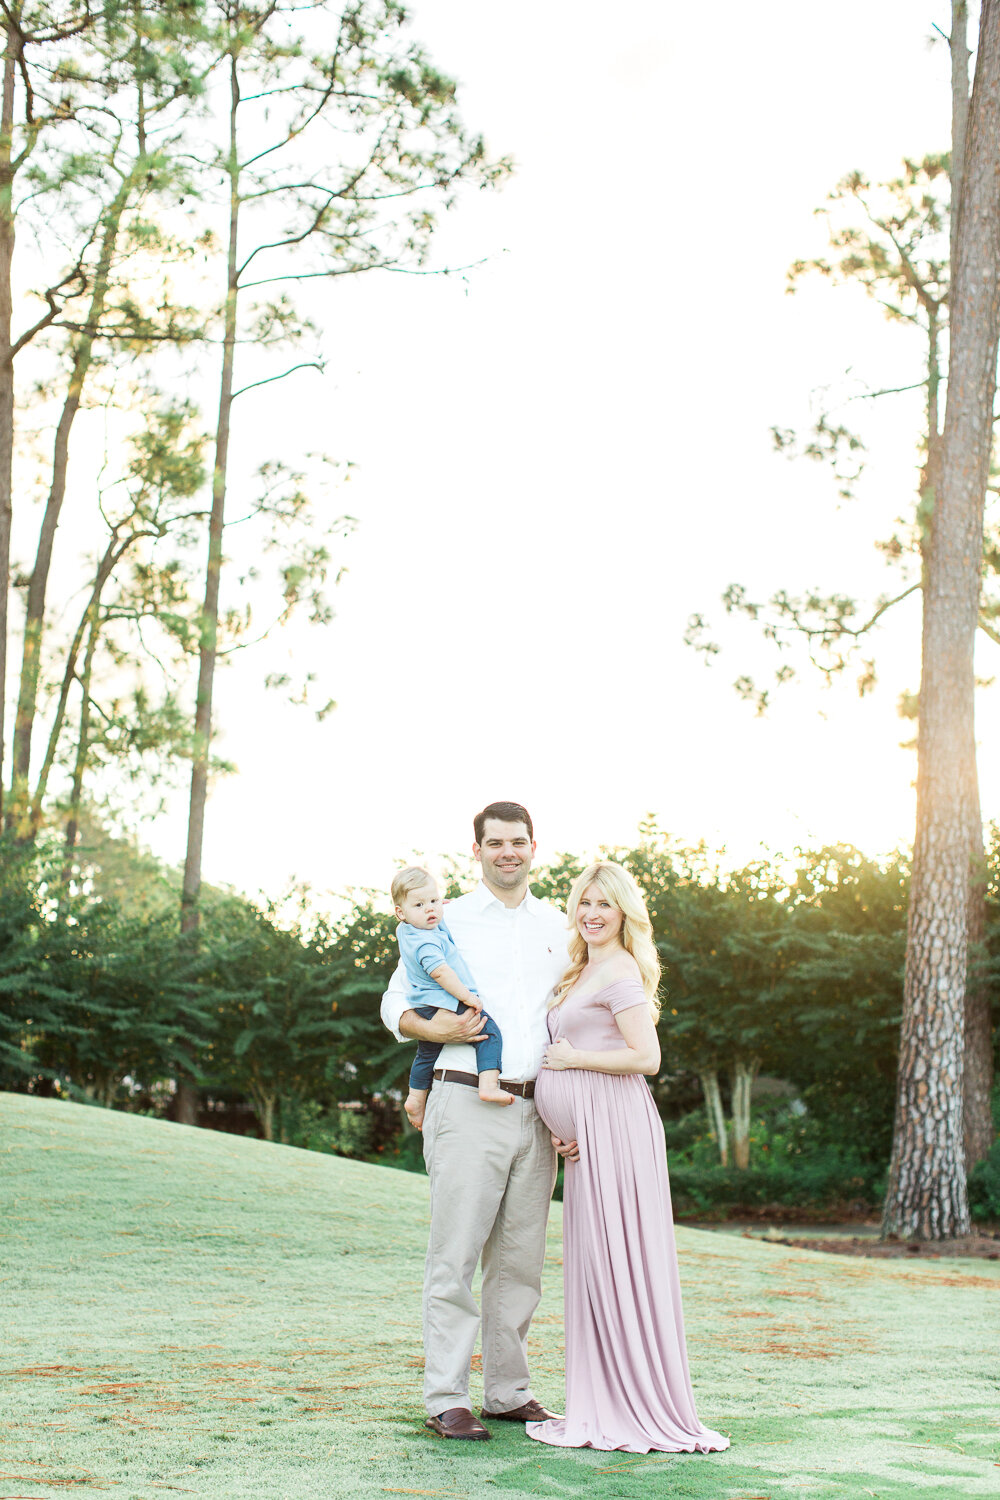 sunrise maternity photoshoot in jacksonville golf and country club